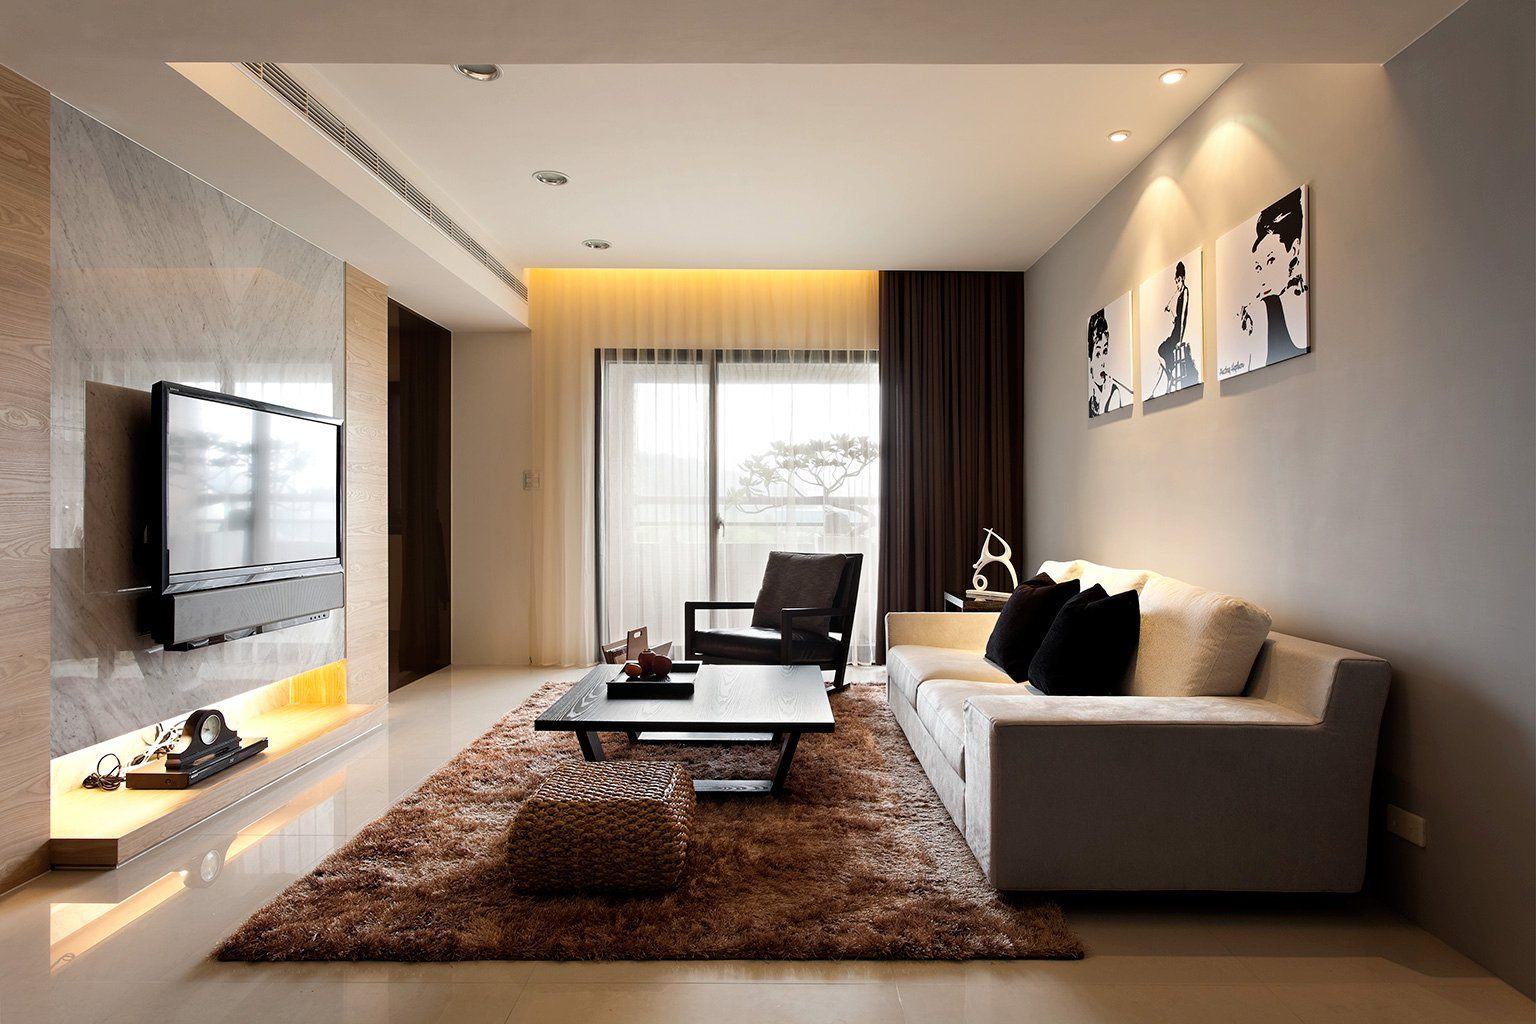 Living Room Design Contemporary Brilliant Fascinating Decoration Ideas For Small Living Room With Brown Design Ideas